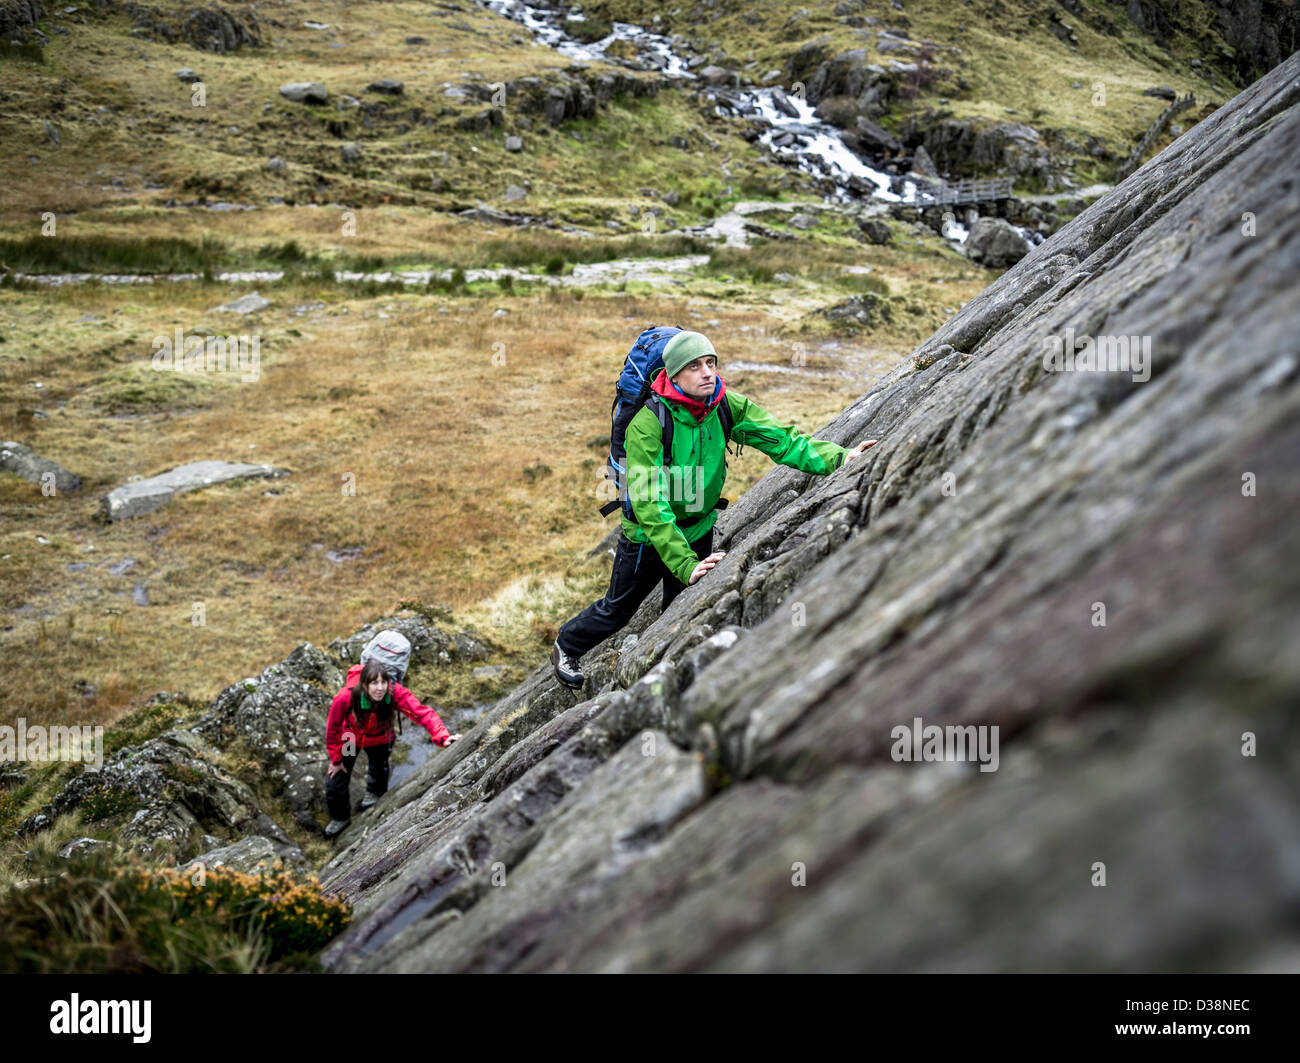 Les randonneurs scaling steep rock face Photo Stock